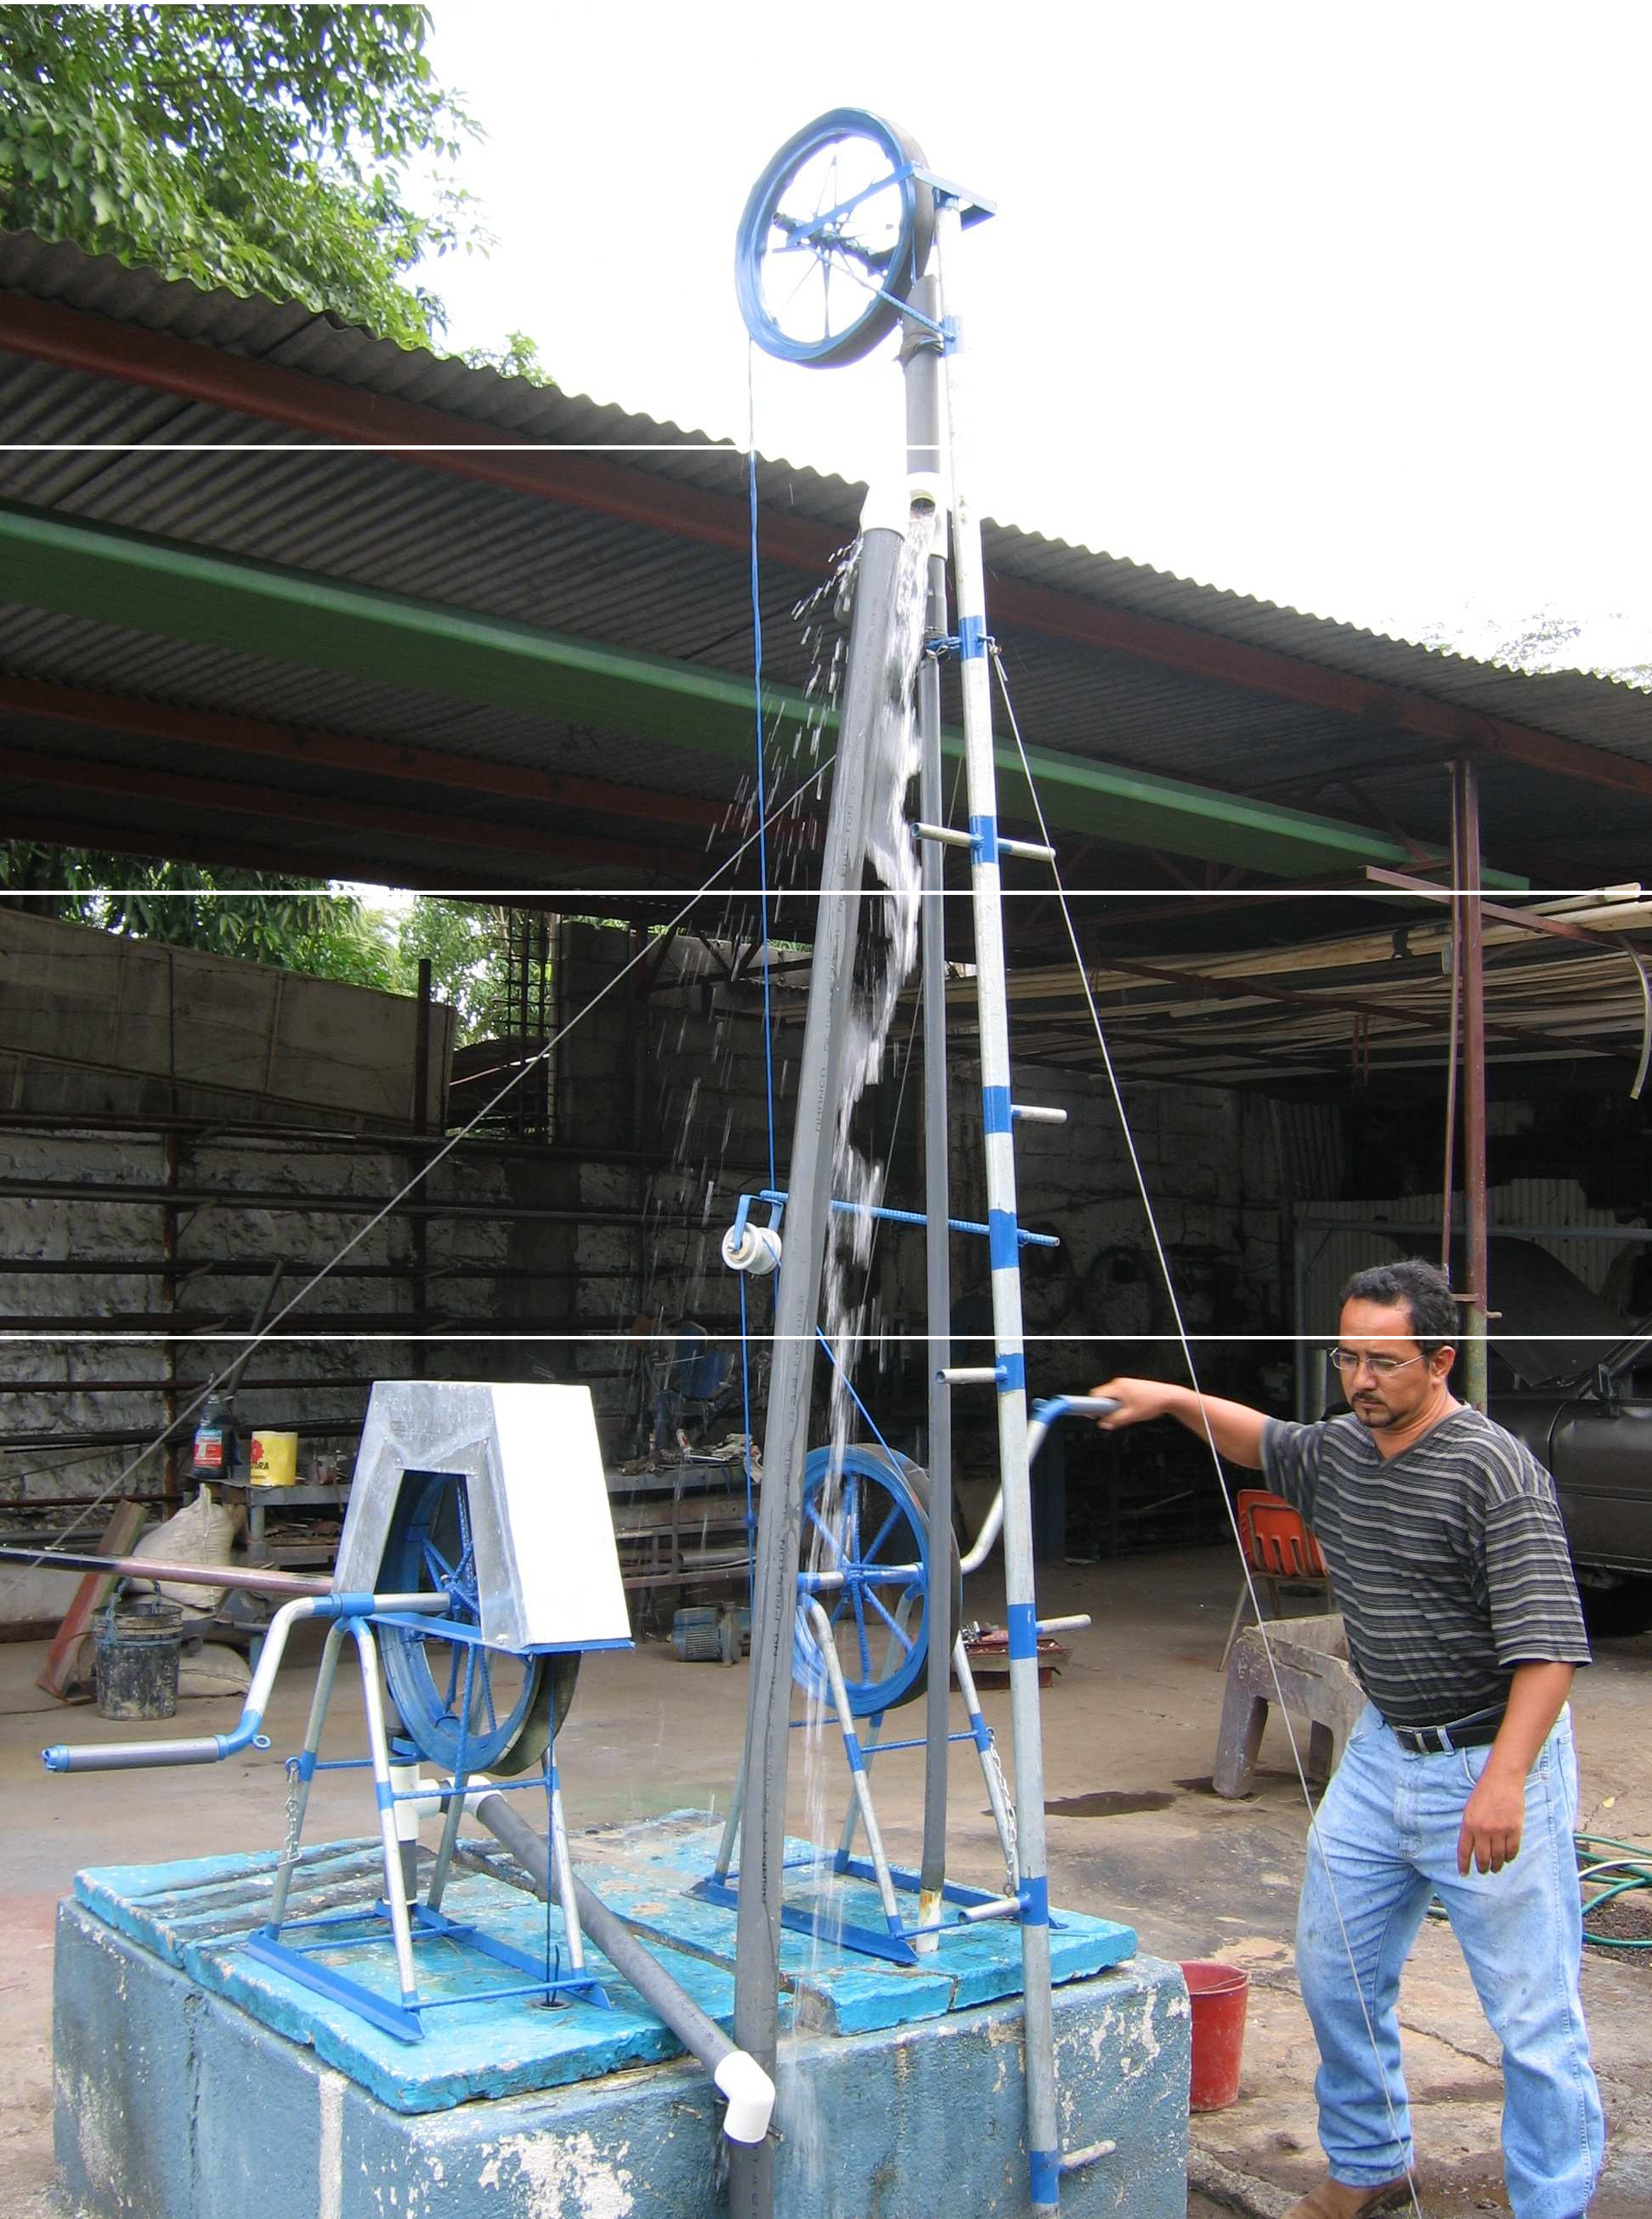 Figure 1: Two models of rope pumps being demonstrated at Aerobombas de Mecate, Managua, Nicaragua. The pump on the right, similar to one ECHO recently purchased, is used for lifting water several meters above ground level for gravity feed systems. Photo by Danny Blank